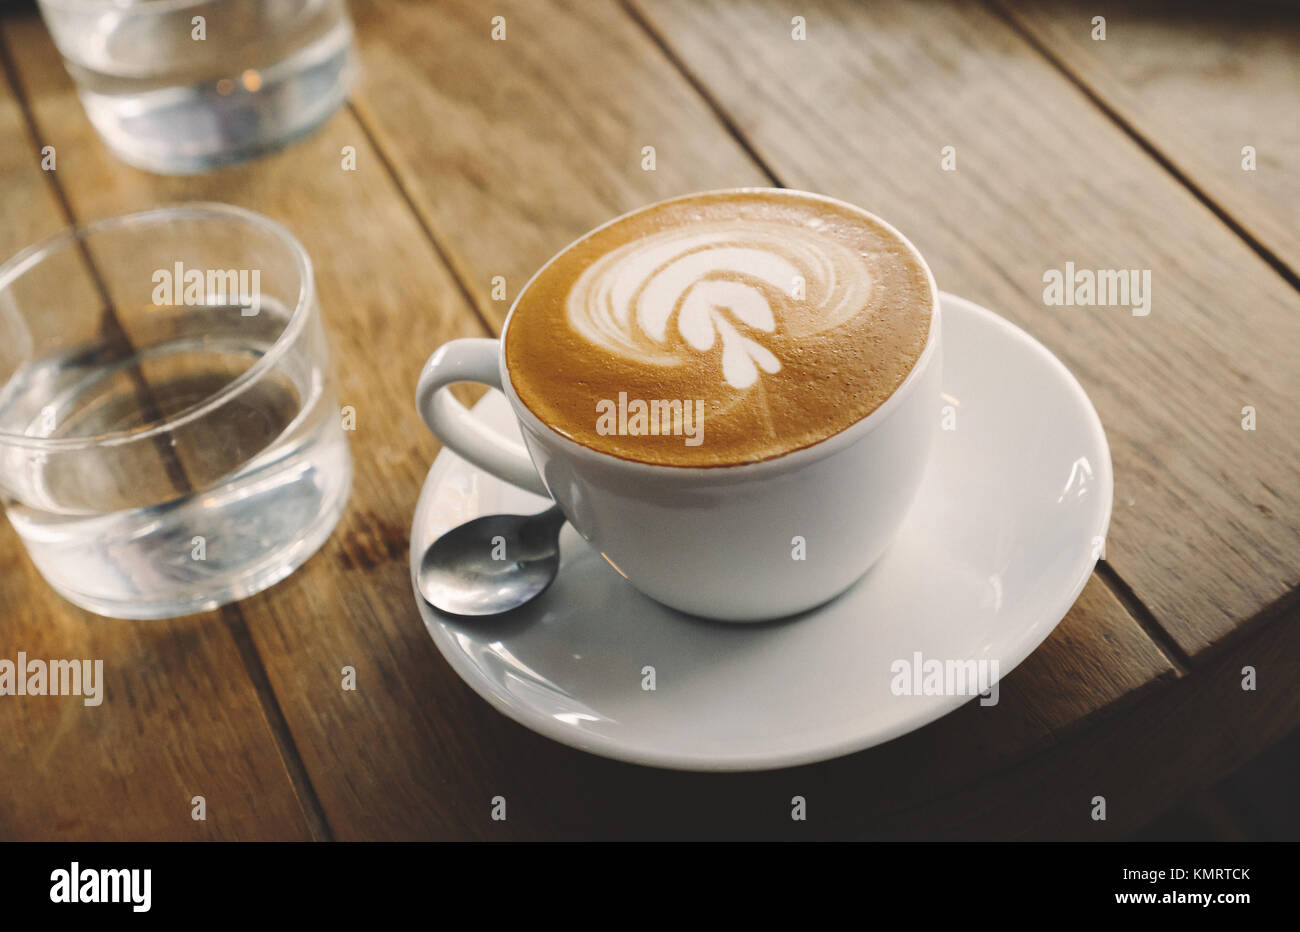 Closeup of barista made coffee with froth art - Stock Image